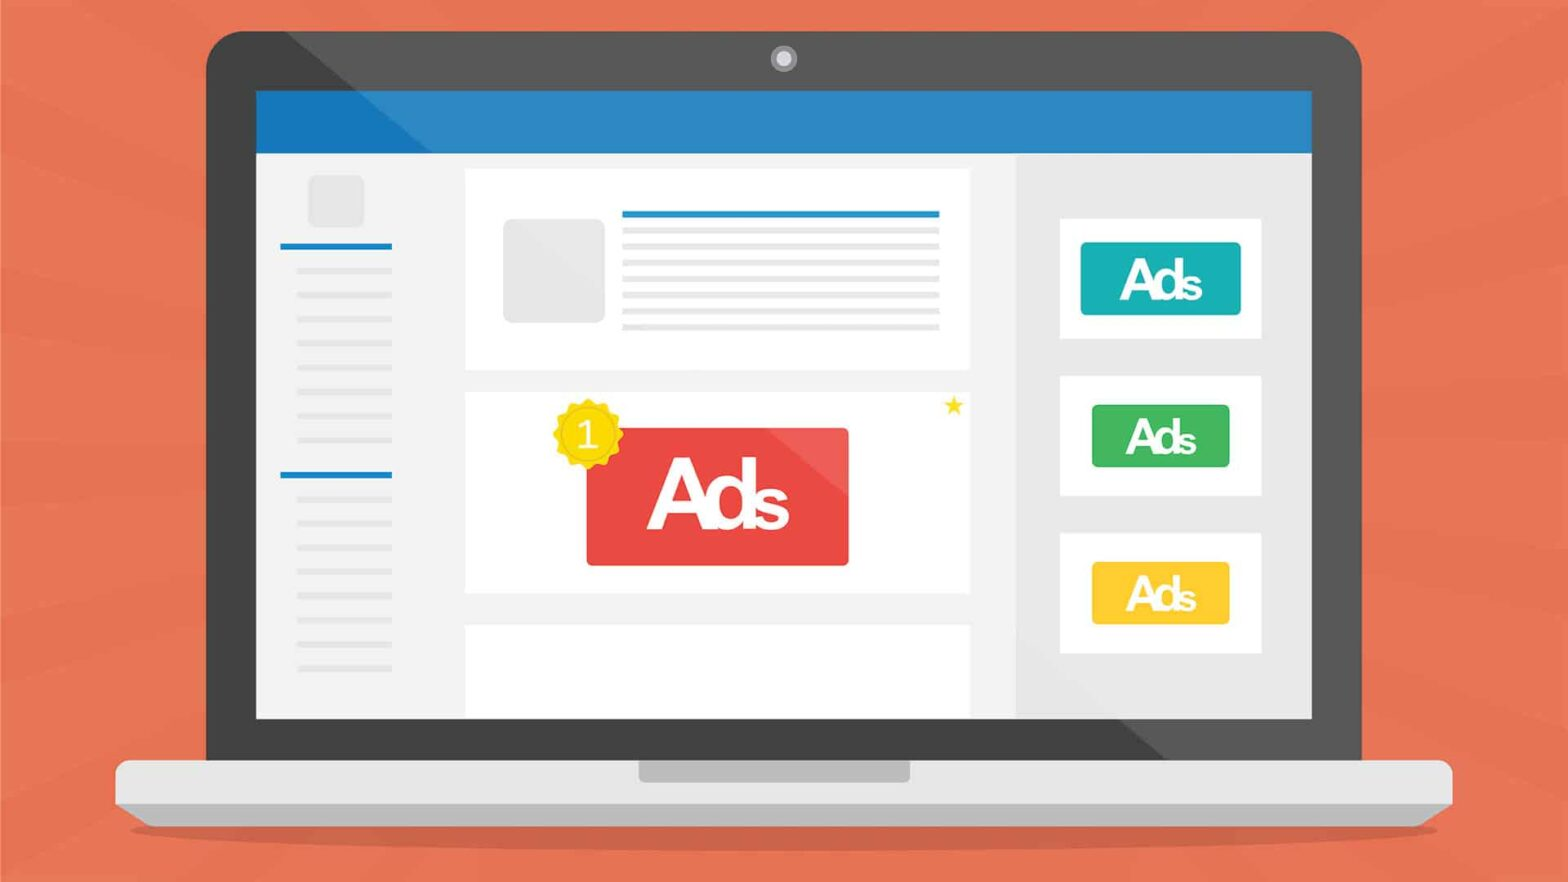 How to measure ad viewability